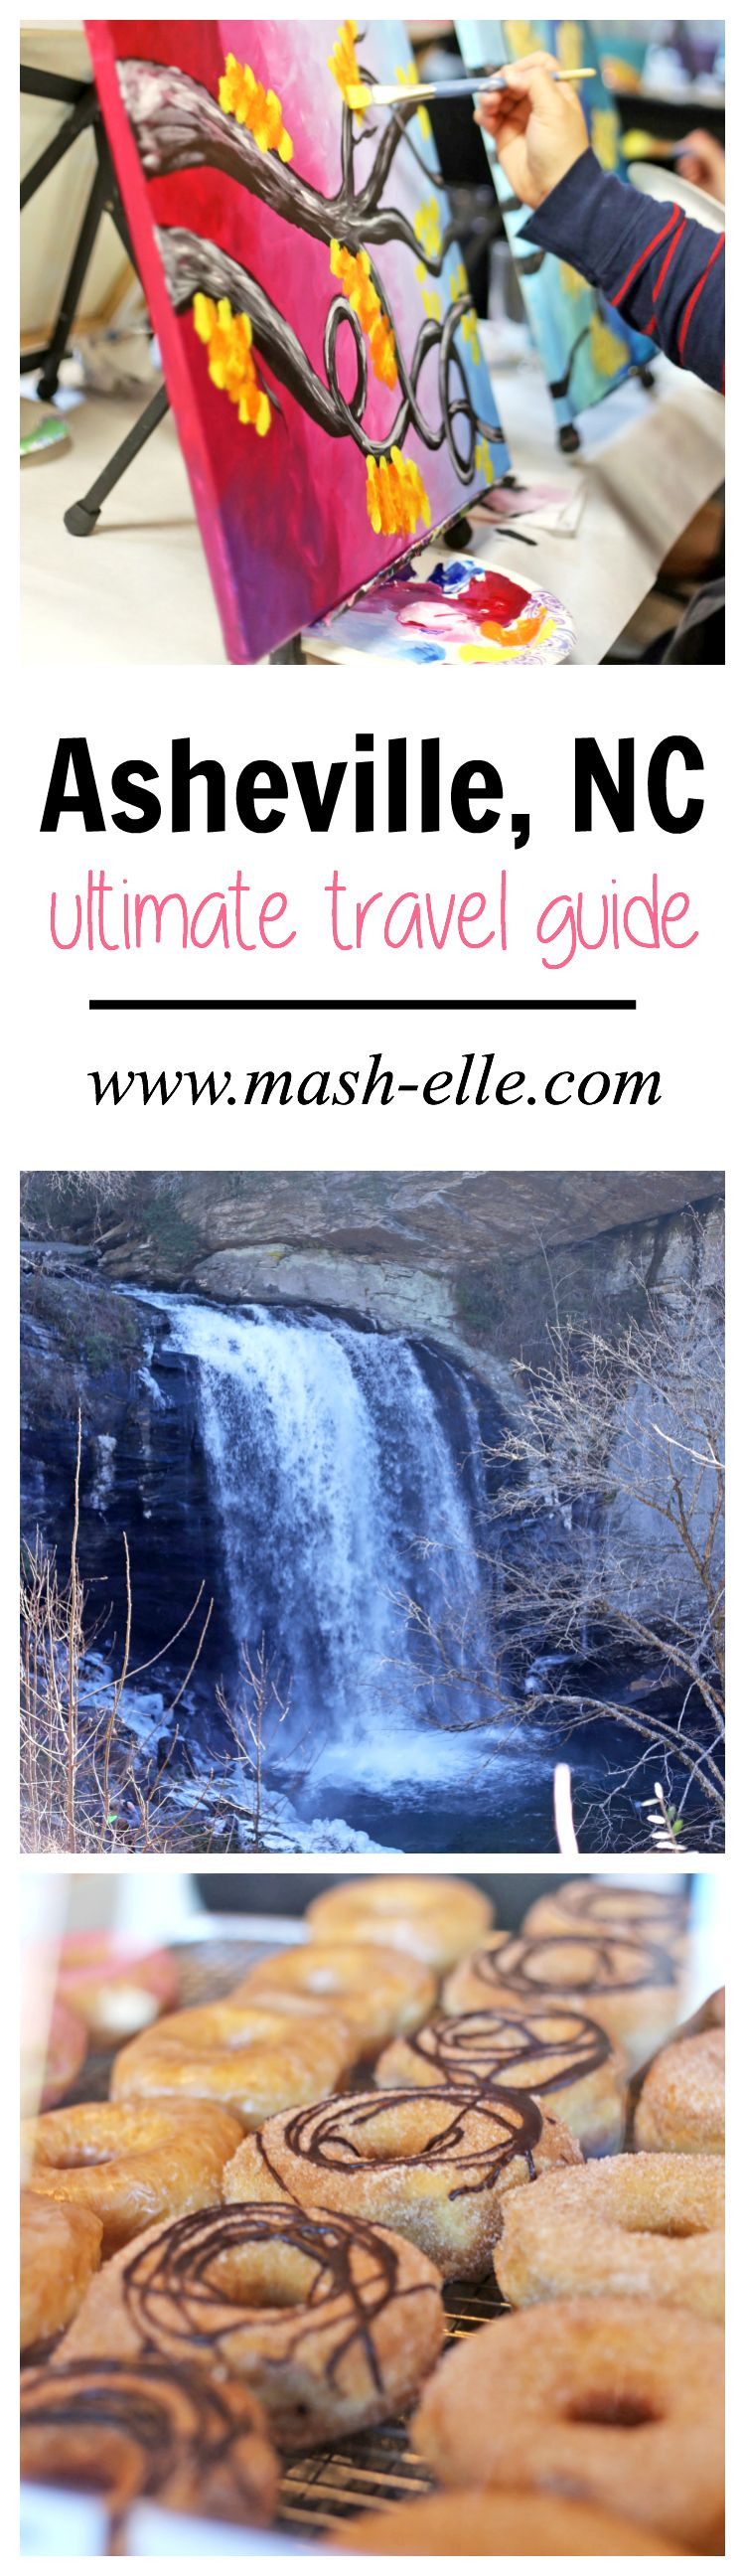 Asheville, North Carolina has so many activities and restaurants to experience! From waterfall tours to saltwater floatation, snow tubing, The Biltmore Estate and painting classes - Asheville has it all! Read my favourites here!